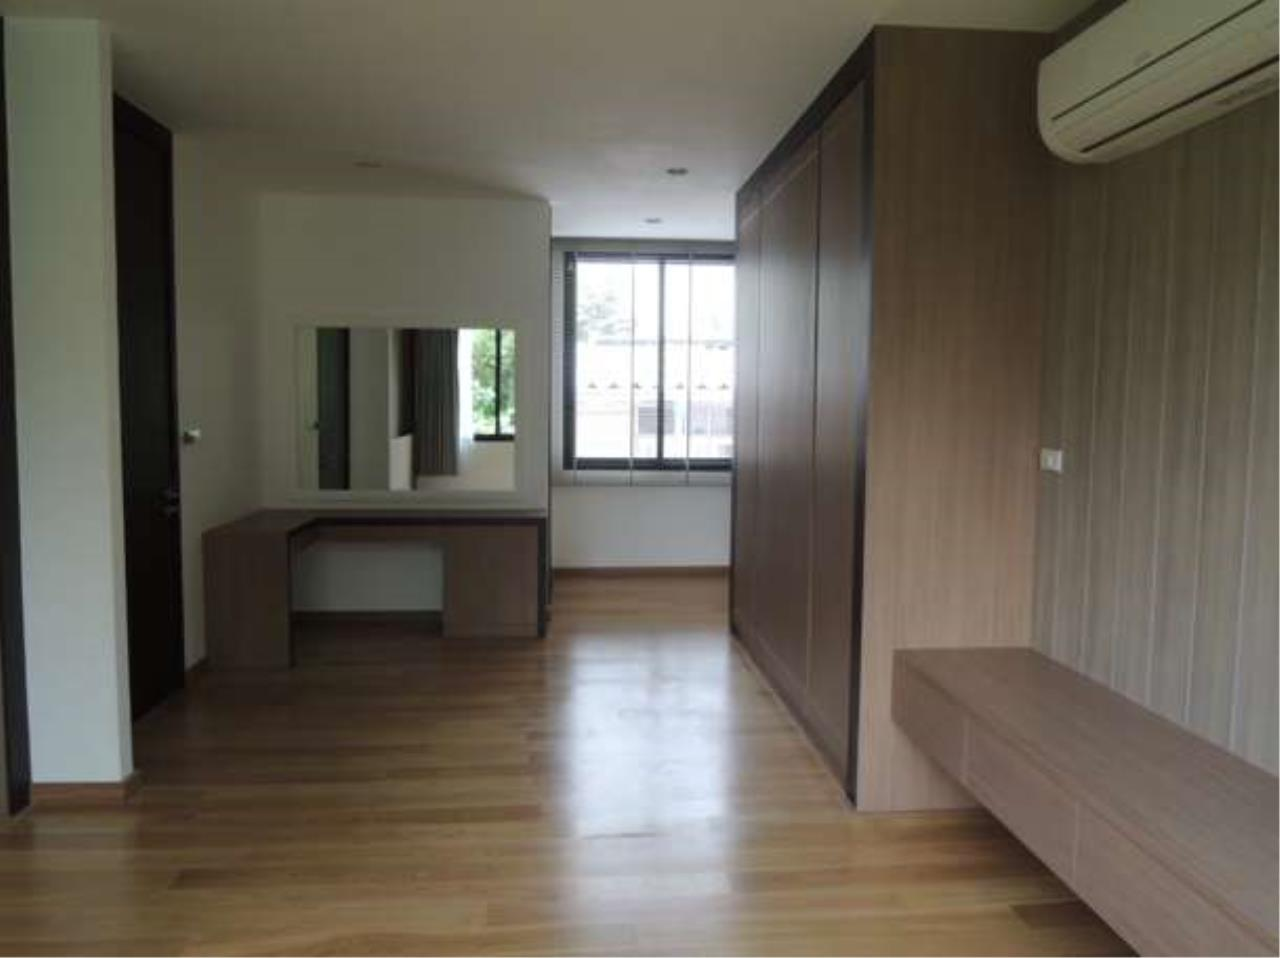 Right Move Thailand Agency's HR423 House For Sale  60,000,000 THB  - 4 Bedrooms - 315 sqm. 11